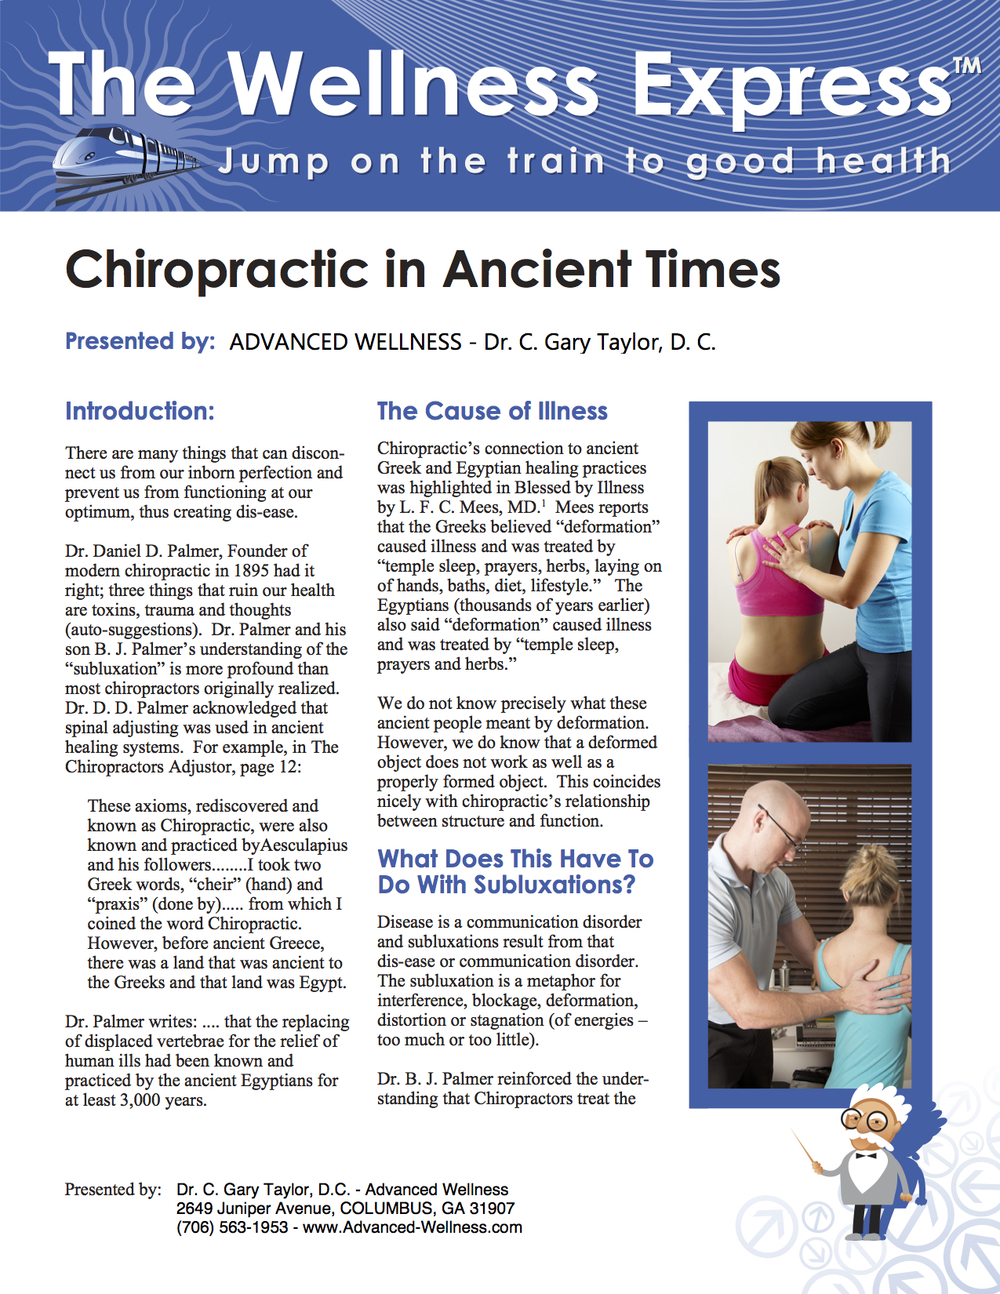 Weekly Newsletter: Chiropractic in Ancient Times